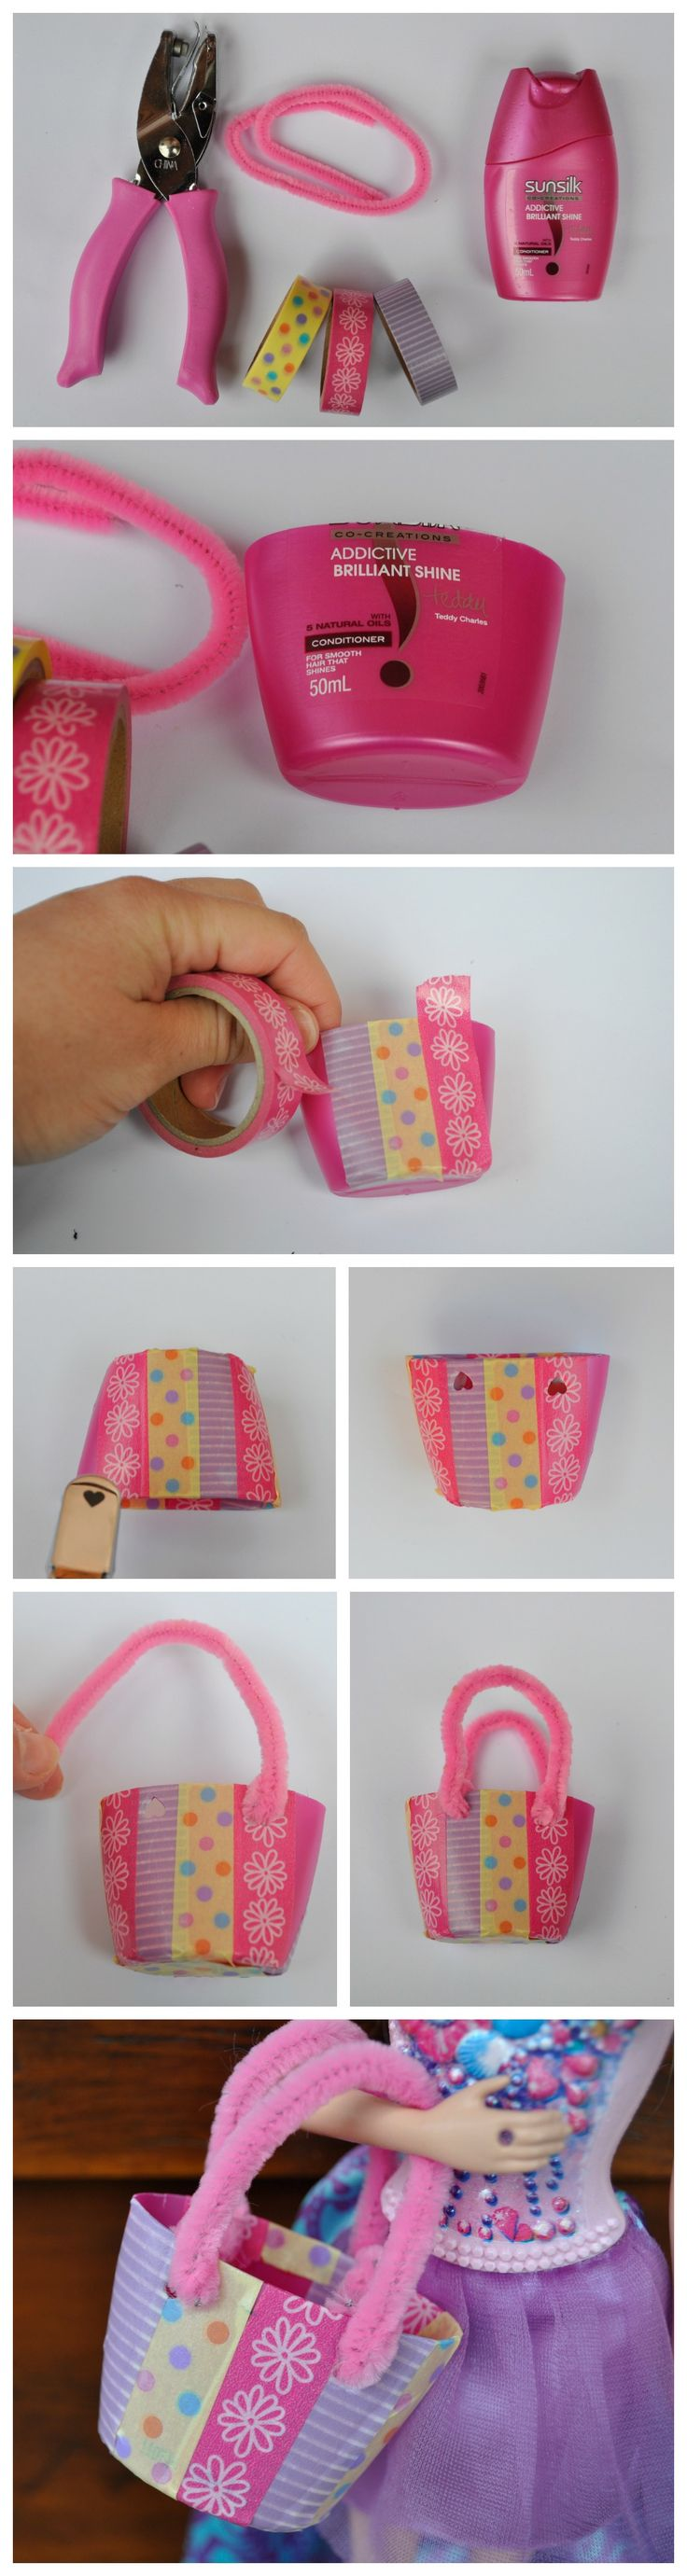 Make a Barbie Tote bag (that fits in a lot of cute things inside) out of a small bottle (Bottle Diy)